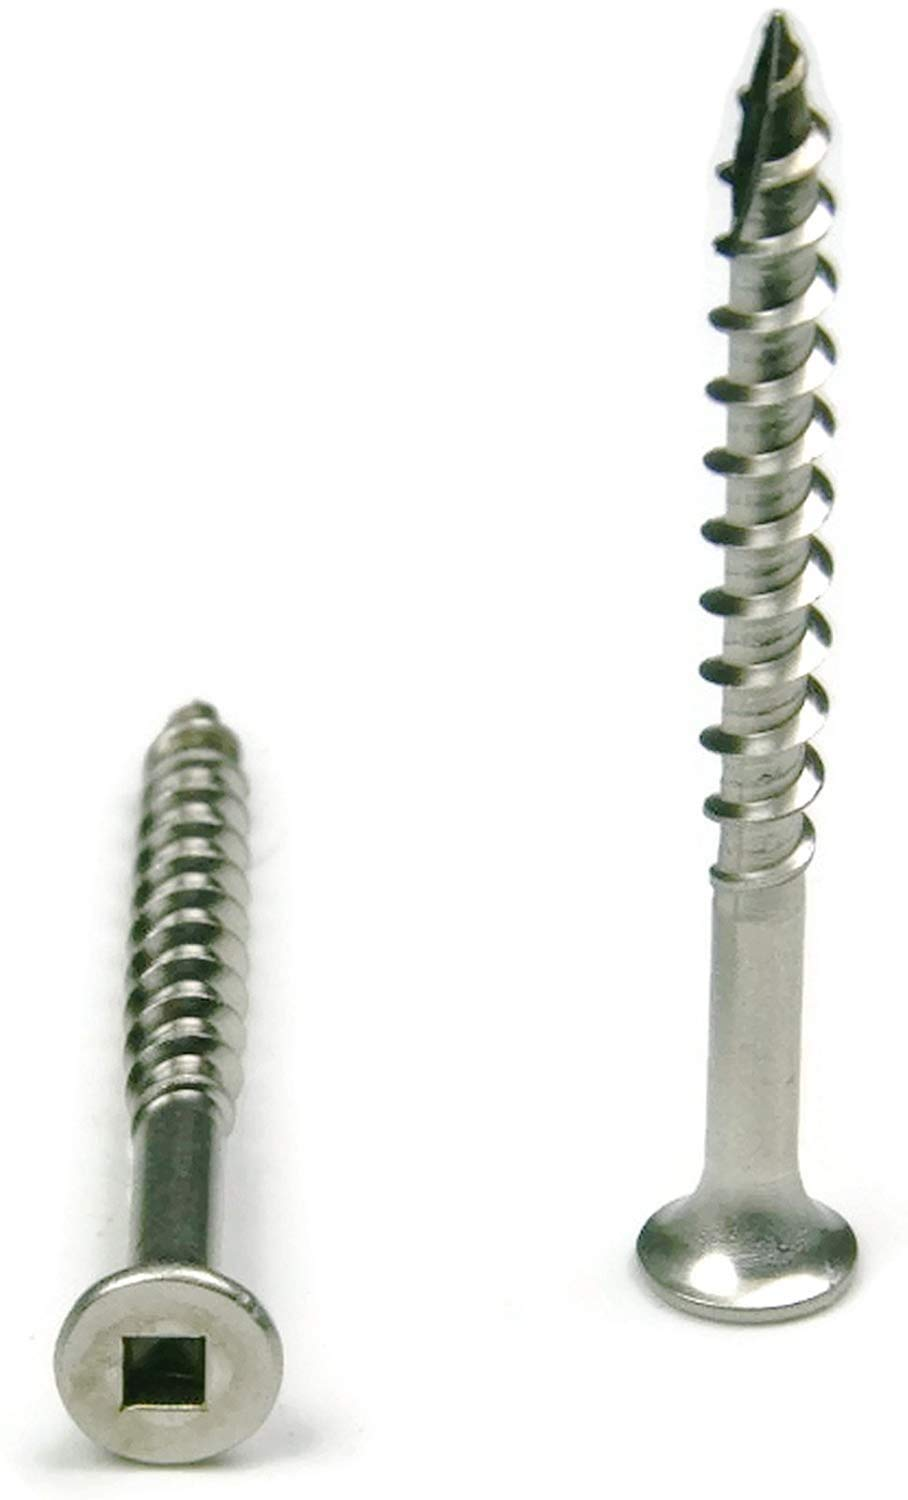 #12 x 2-1/2'' Stainless Steel Wood Screw Square Drive, Bugle Head (Quantity: 1200) Type 17 Wood Cutting Point, 1-3/4'' of Thread Length, 12 Screw Diameter, 2-1/2'' Screw Length